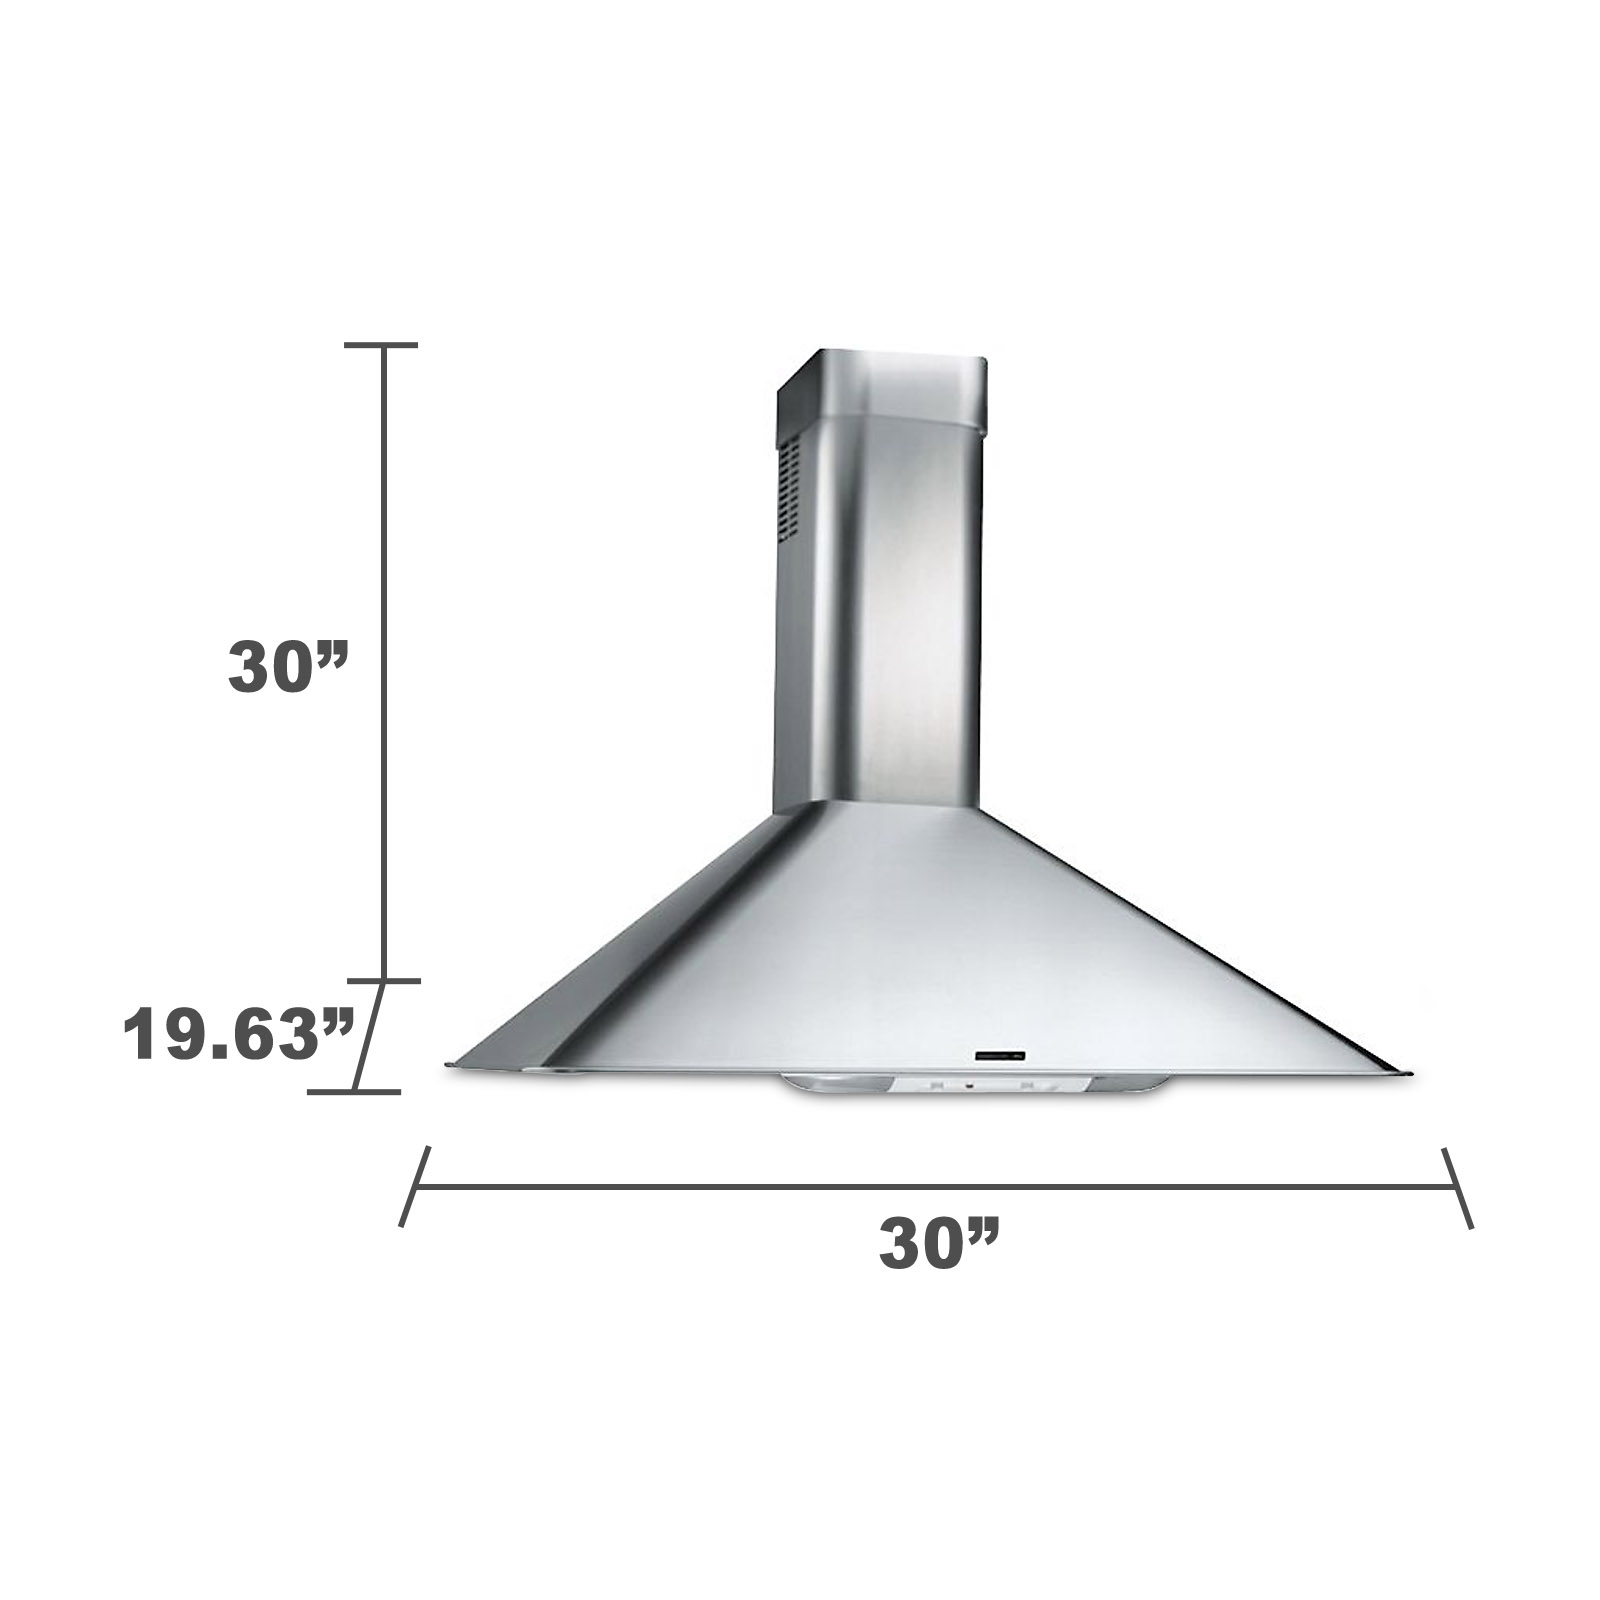 "Kenmore 50303 30"" Italian-Design Chimney Range Hood - Stainless 50303"